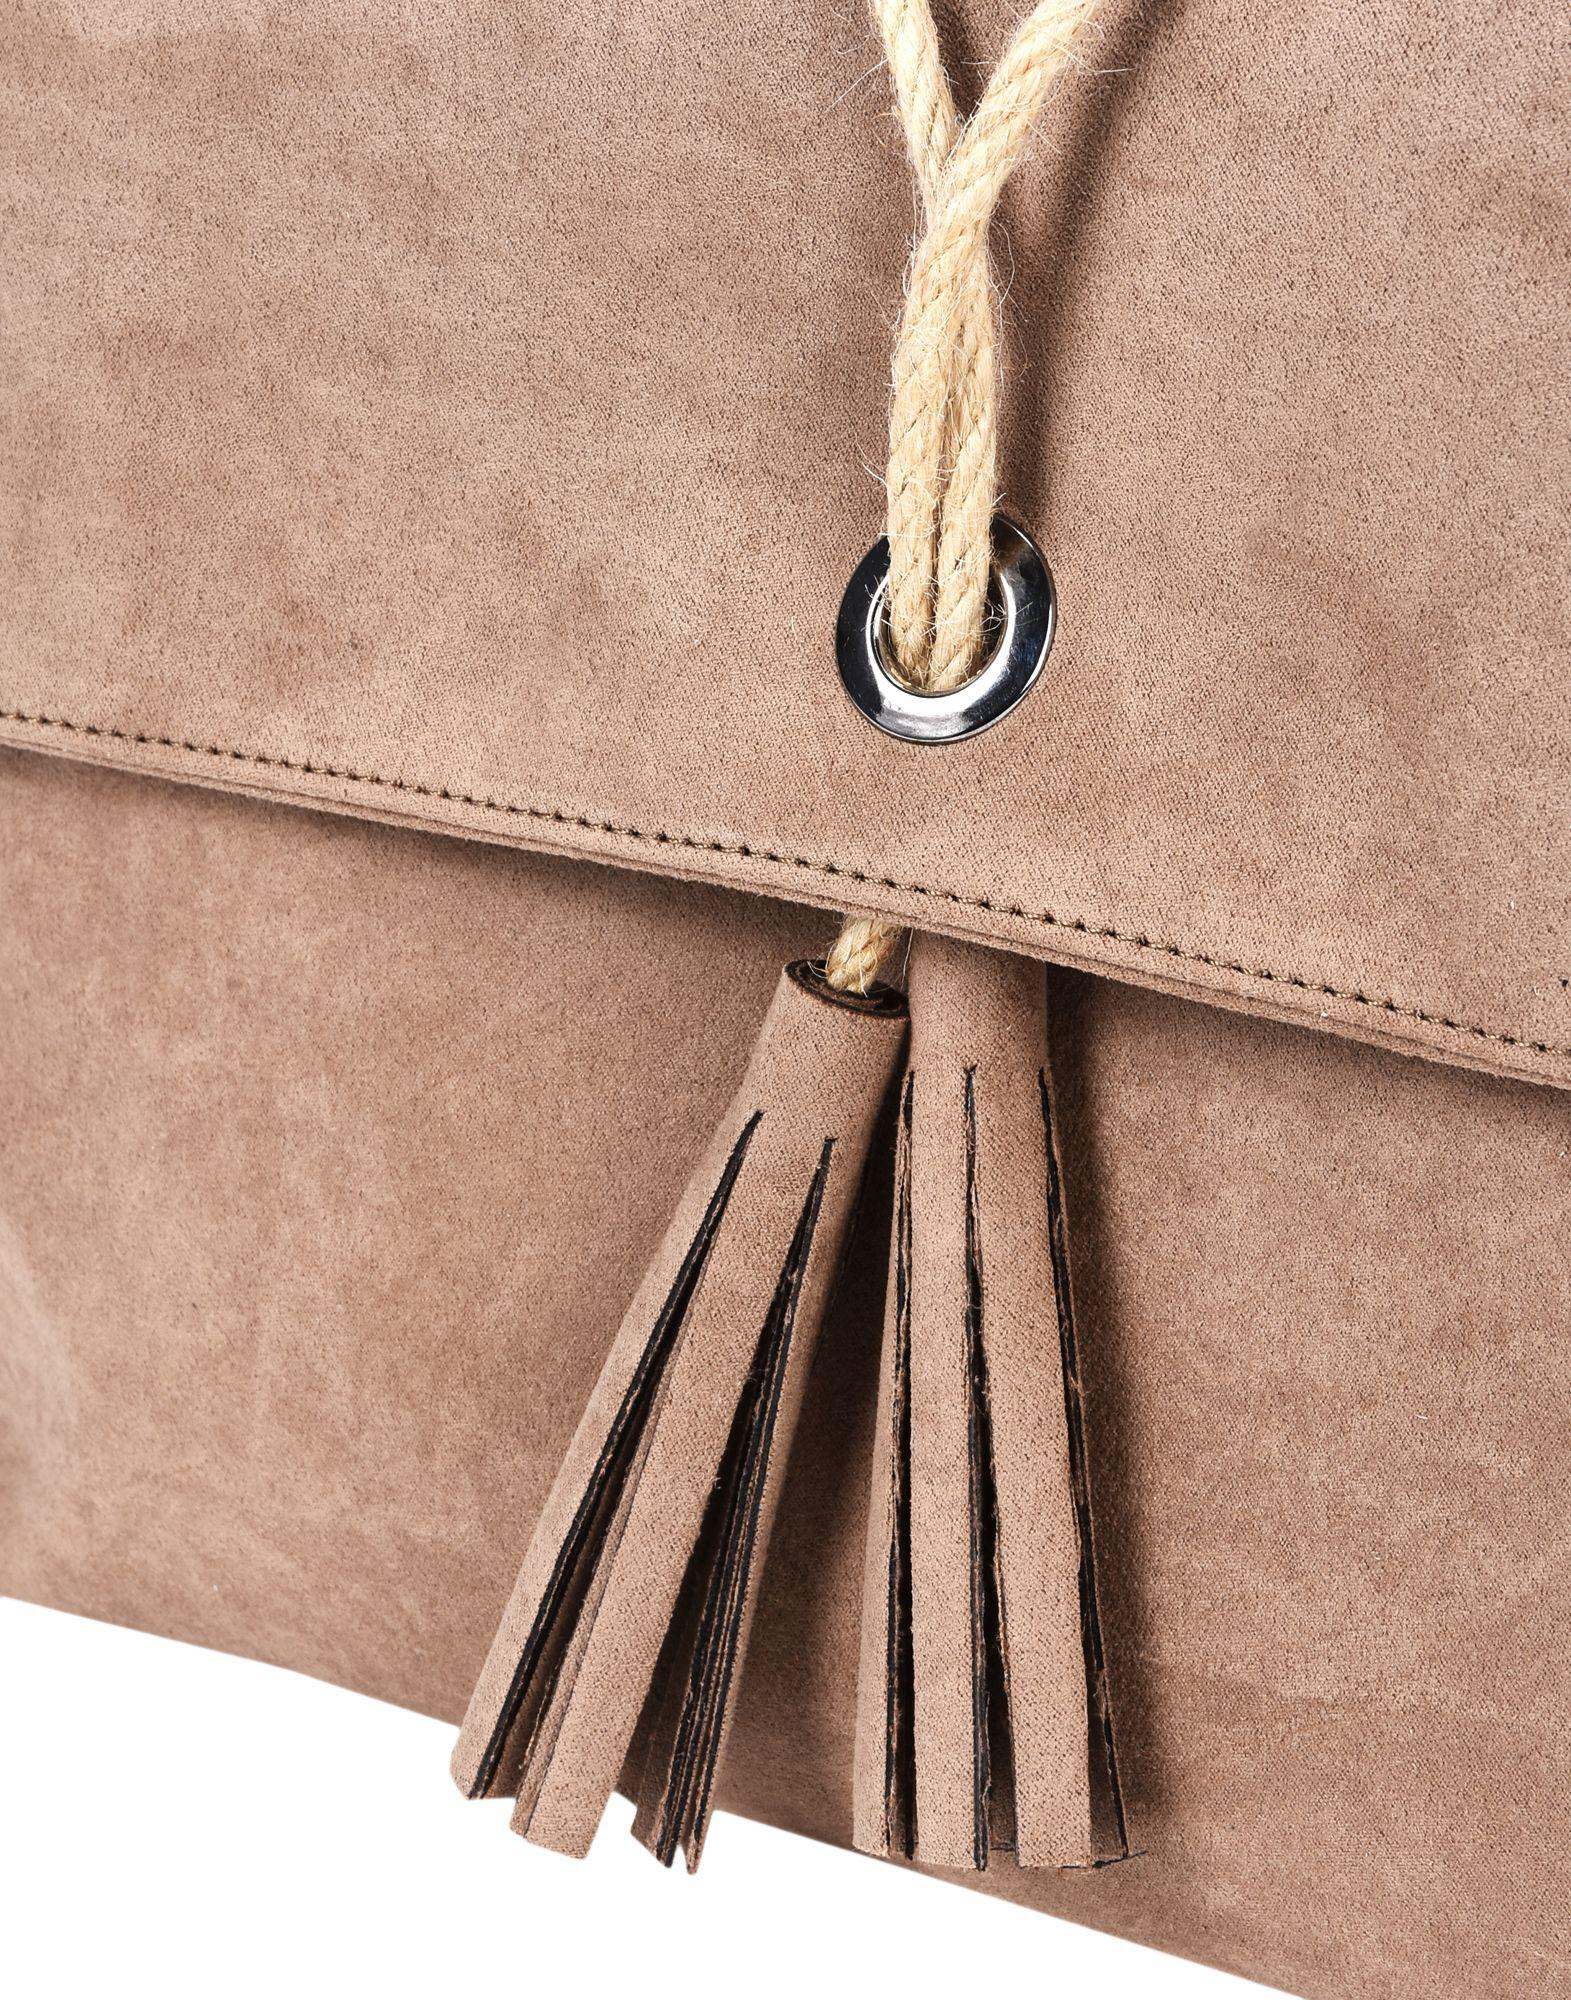 8 Synthetic Cross-body Bags in Khaki (Natural)